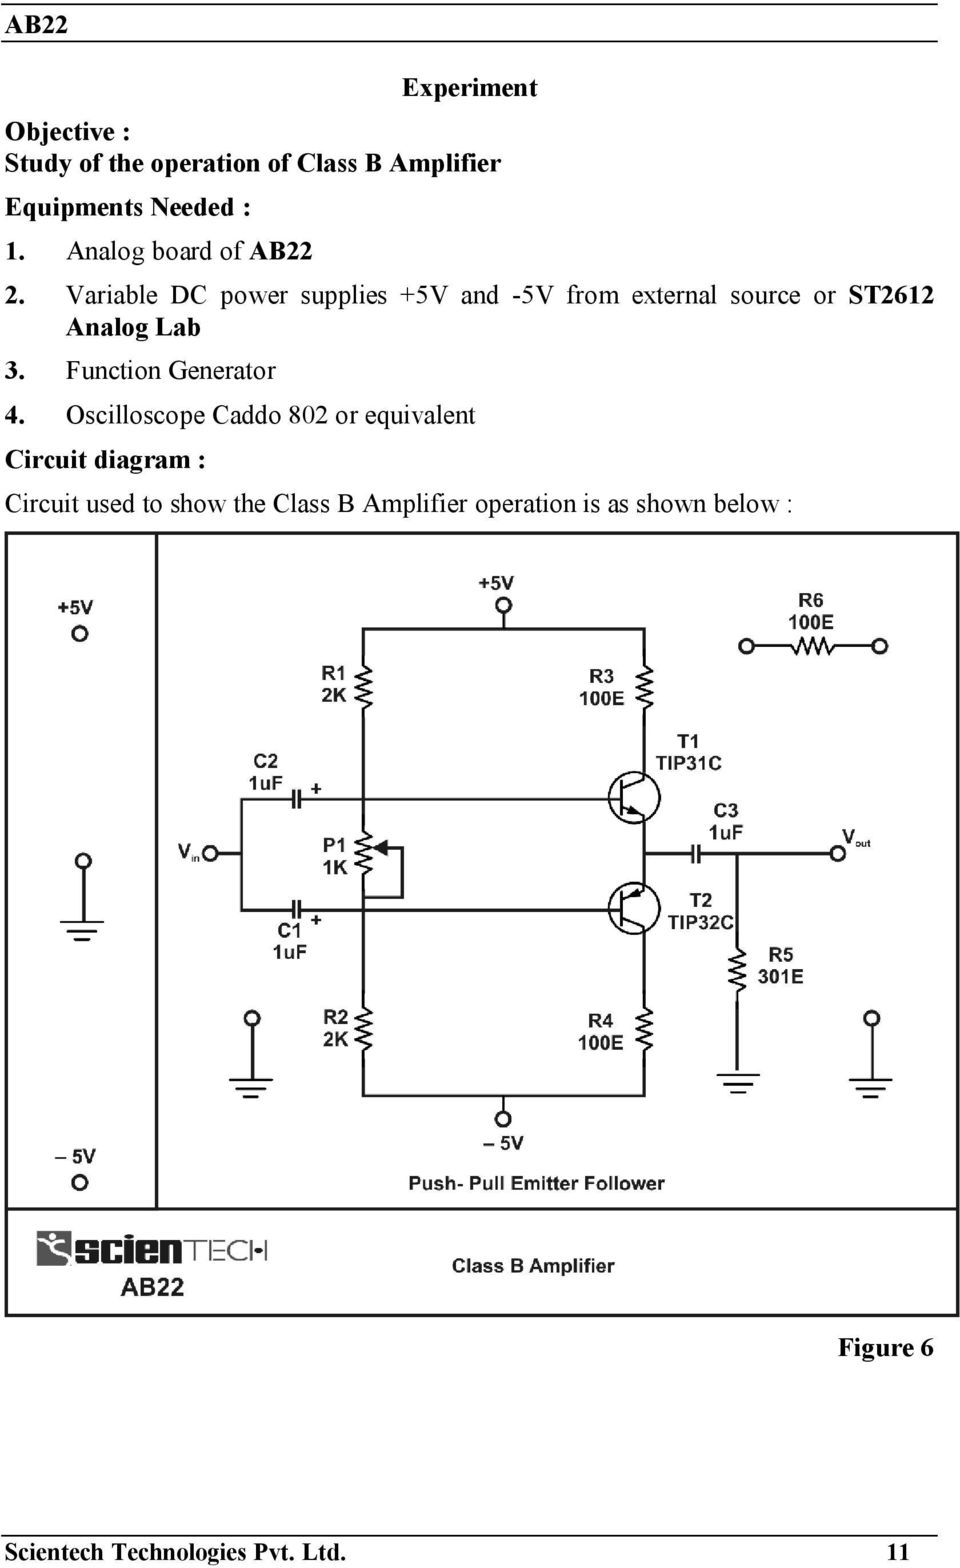 hight resolution of variable dc power supplies 5v and 5v from external source or st2612 analog lab